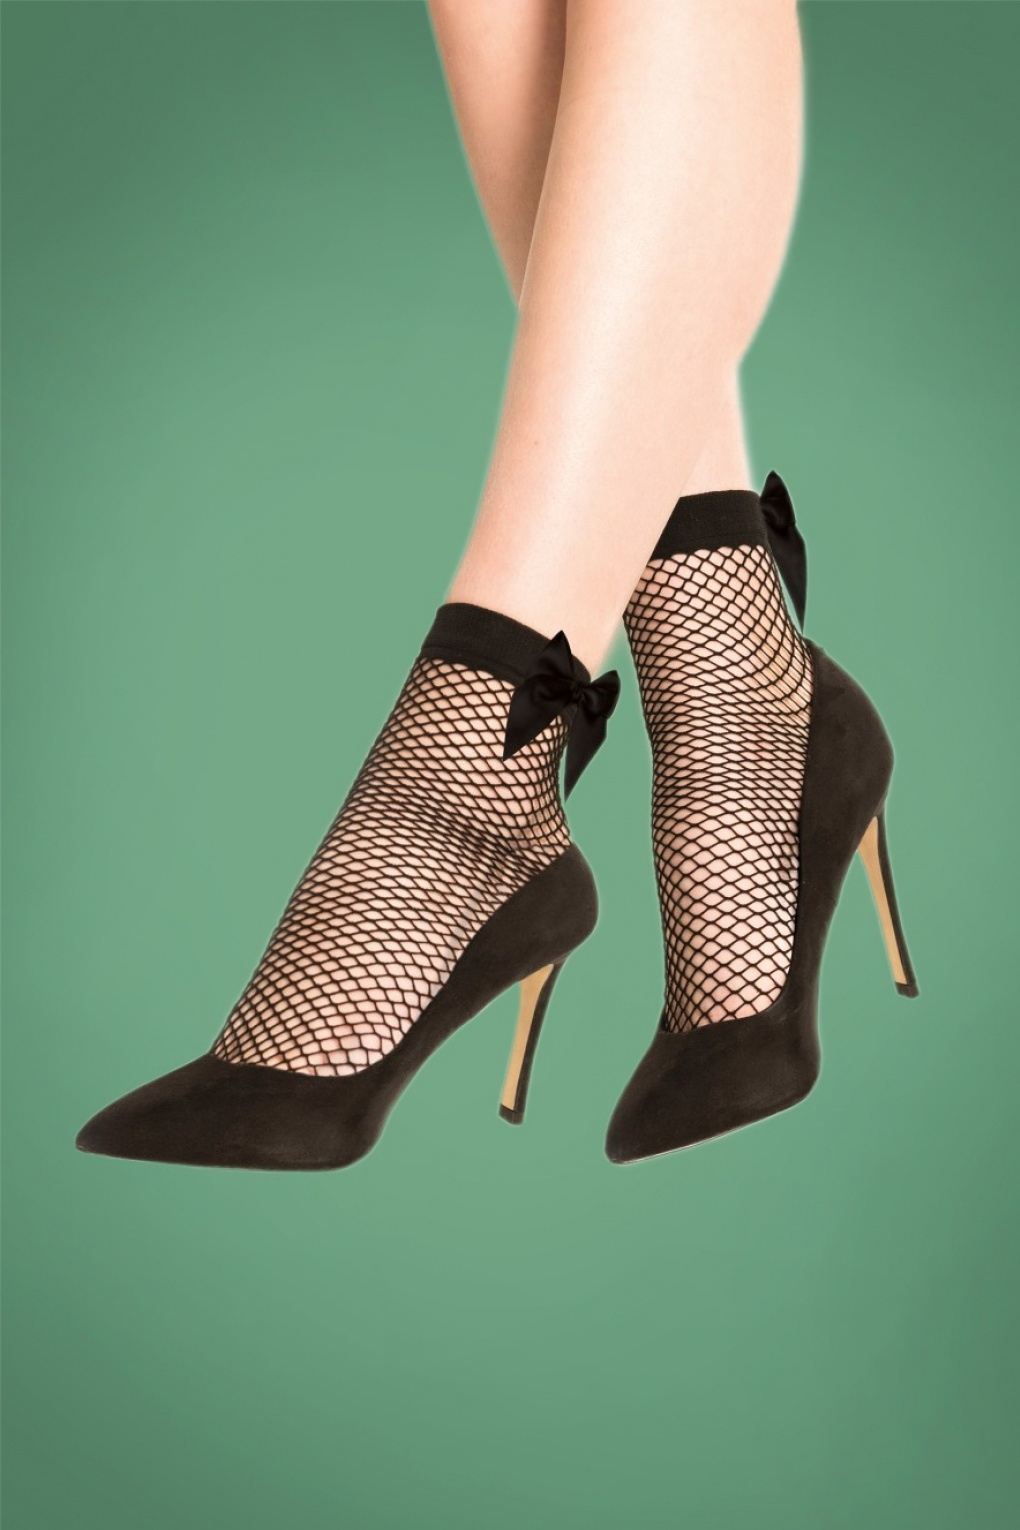 Vintage Socks | 1920s, 1930s, 1940s, 1950s, 1960s History 50s Bow Fishnet Socks in Black £7.13 AT vintagedancer.com